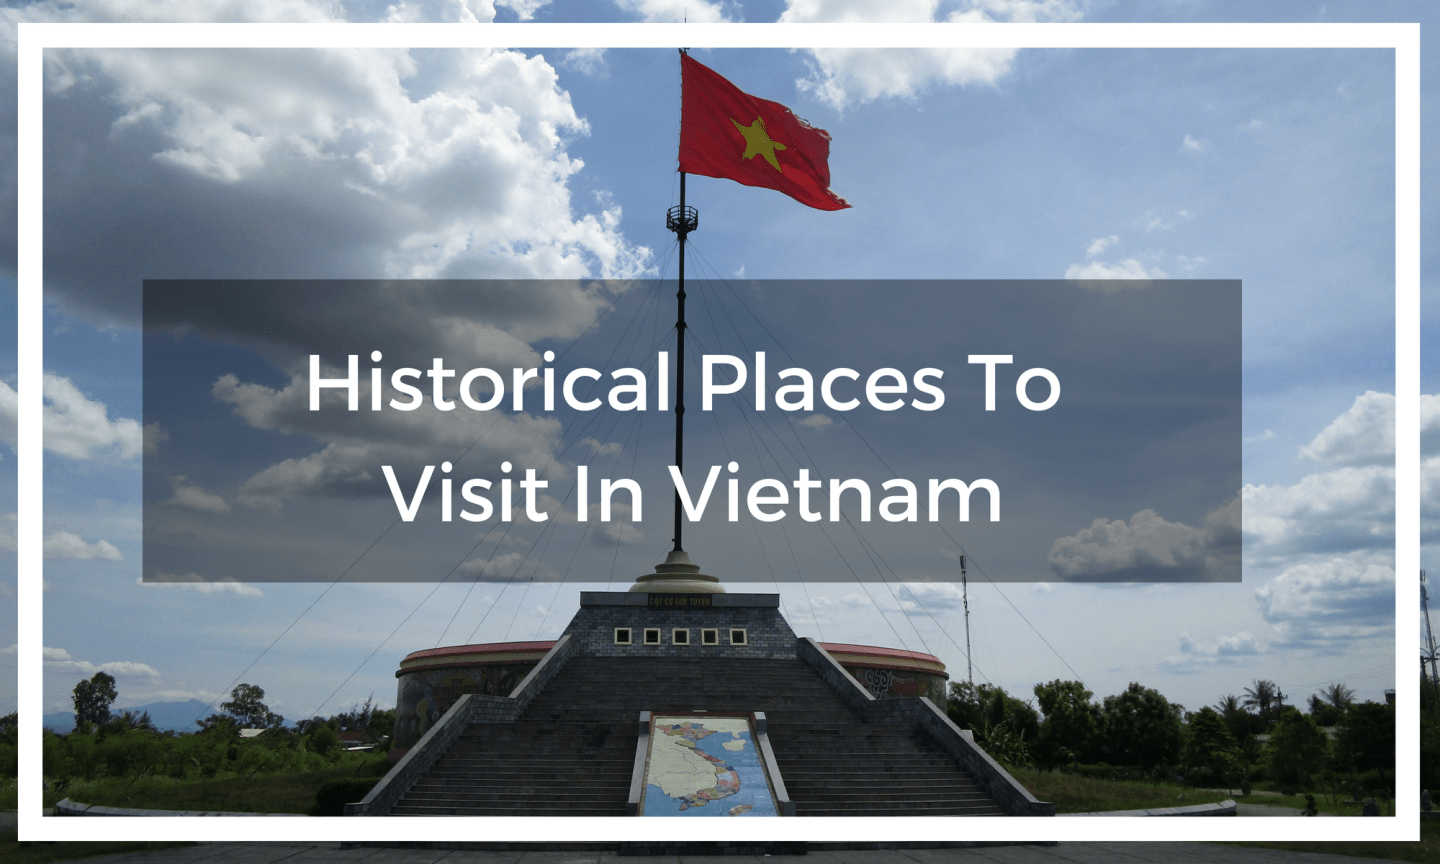 Historical Places To Visit In Vietnam